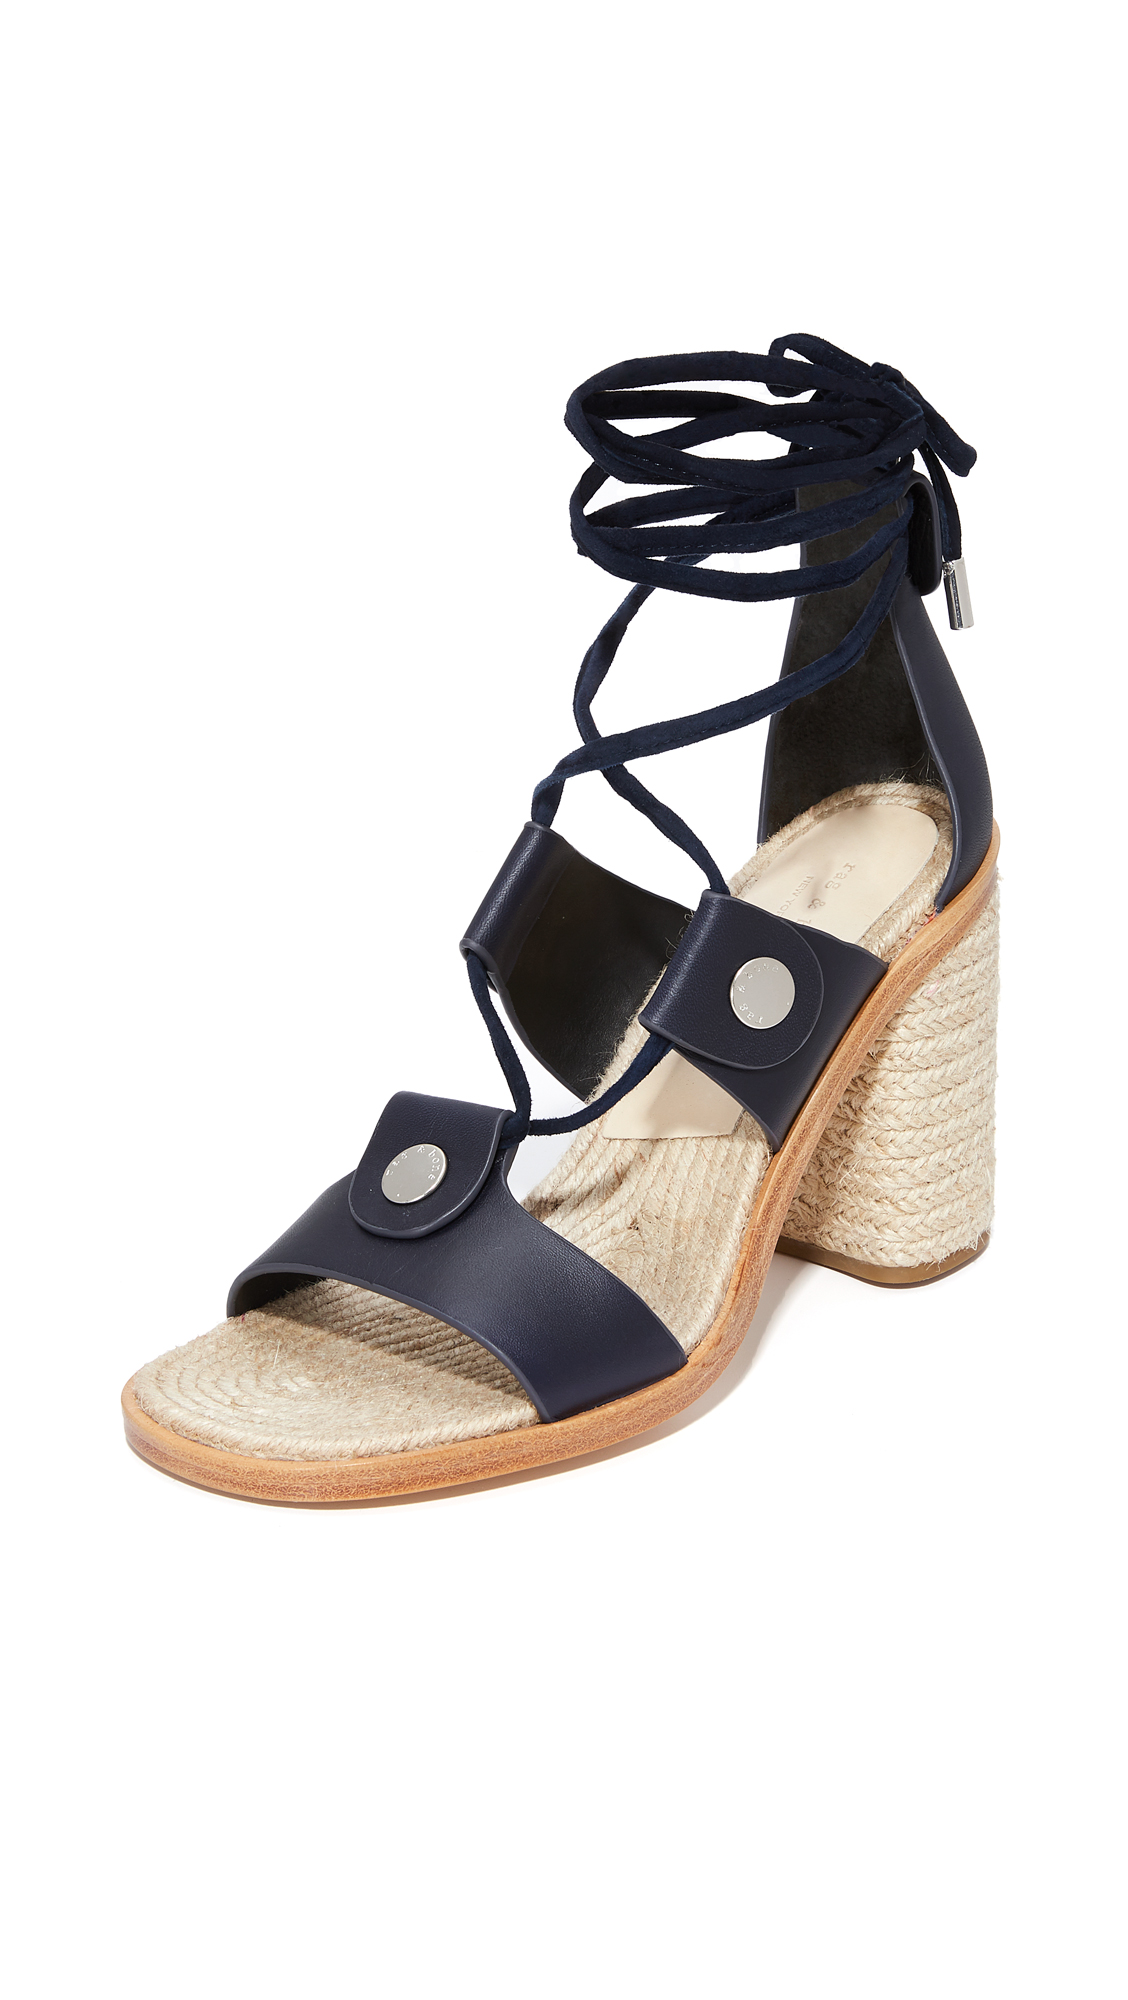 Rag & Bone Eden Lace Up Sandals - Navy